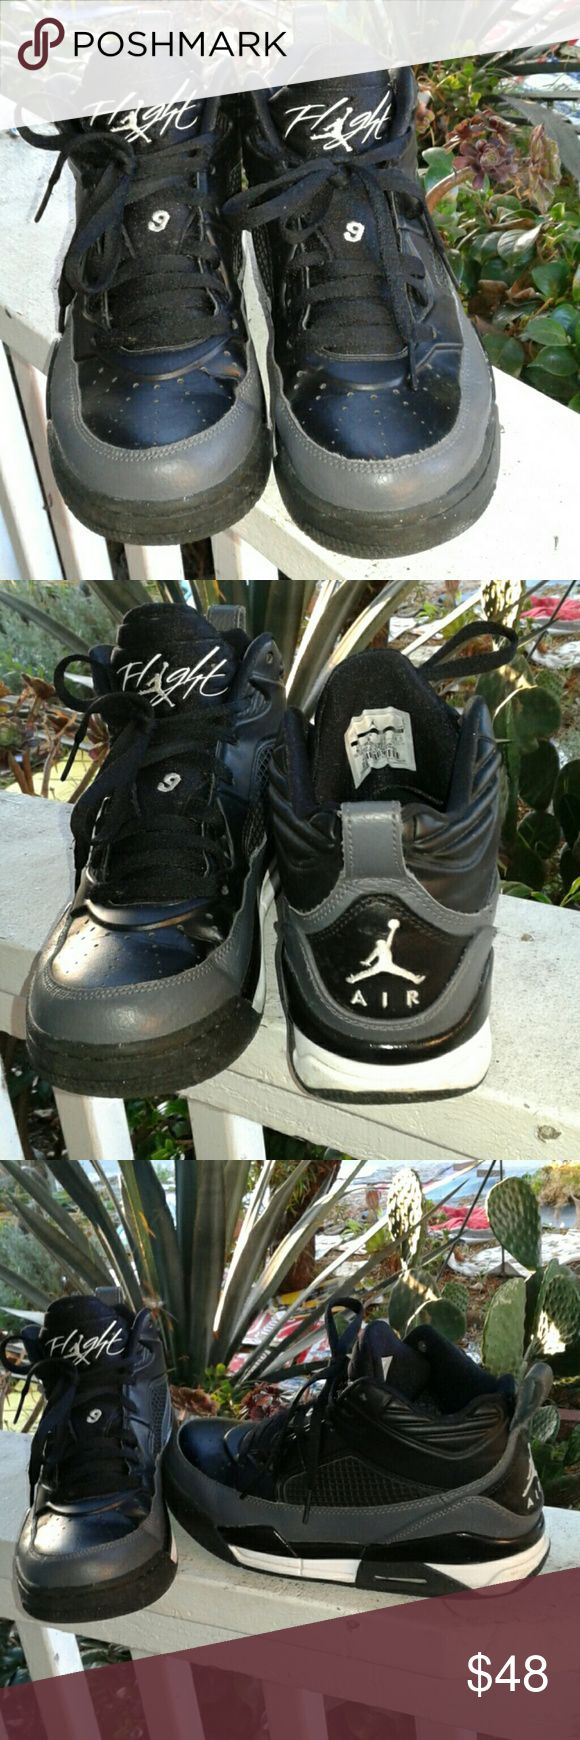 best website 51837 9a95b usa nike air jordan flight 9 black gray white youth bac3c 1d067